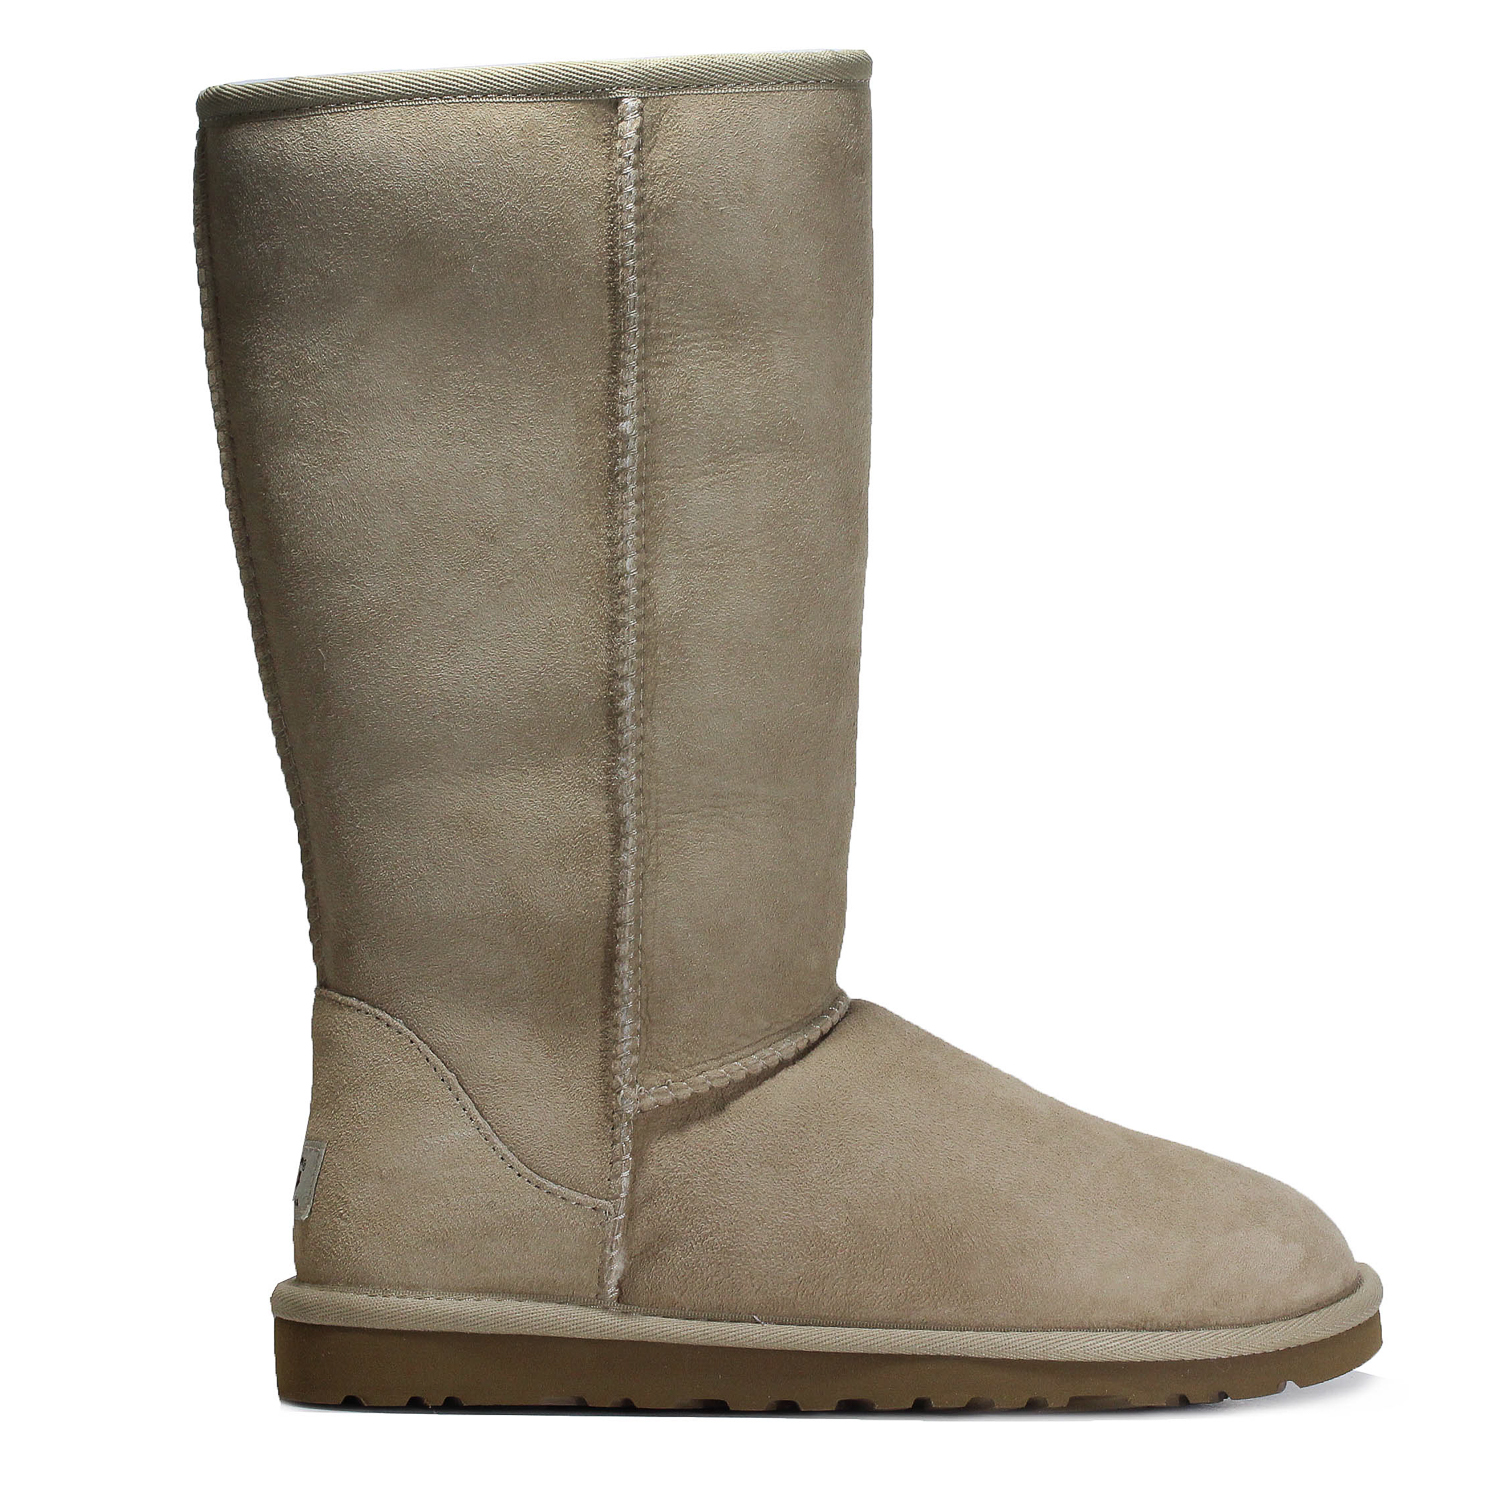 f5d4e565559b Details about UGG Australia Women s Classic Tall 5815W Boot Shoes Sand